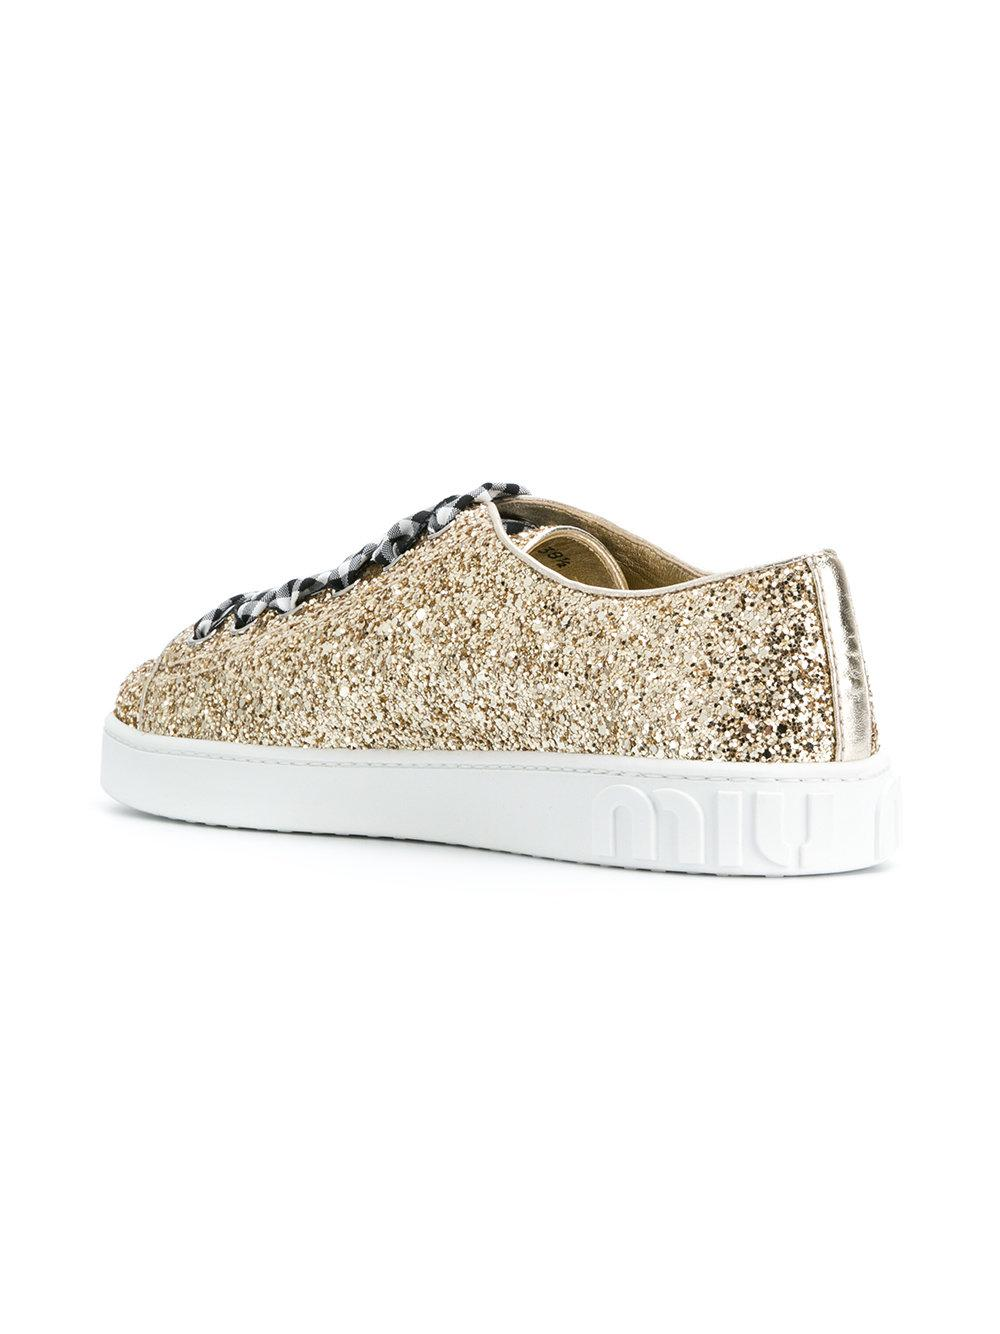 patch embroidered glittered sneakers - Metallic Miu Miu Cheap Outlet 9FUExipFvl